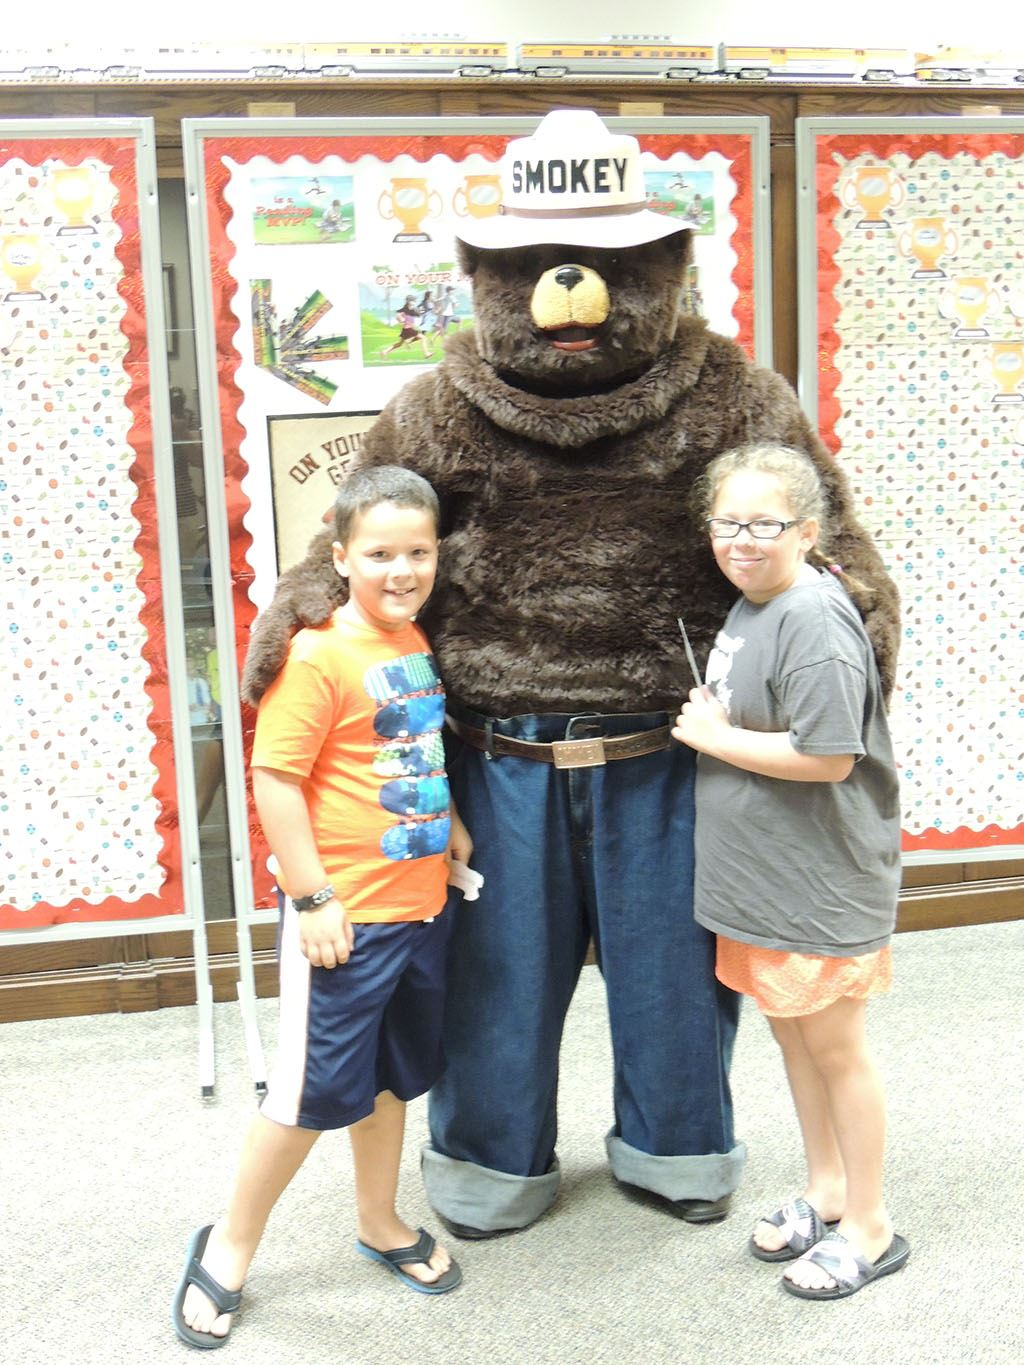 Smokey the Bear with boy and girl